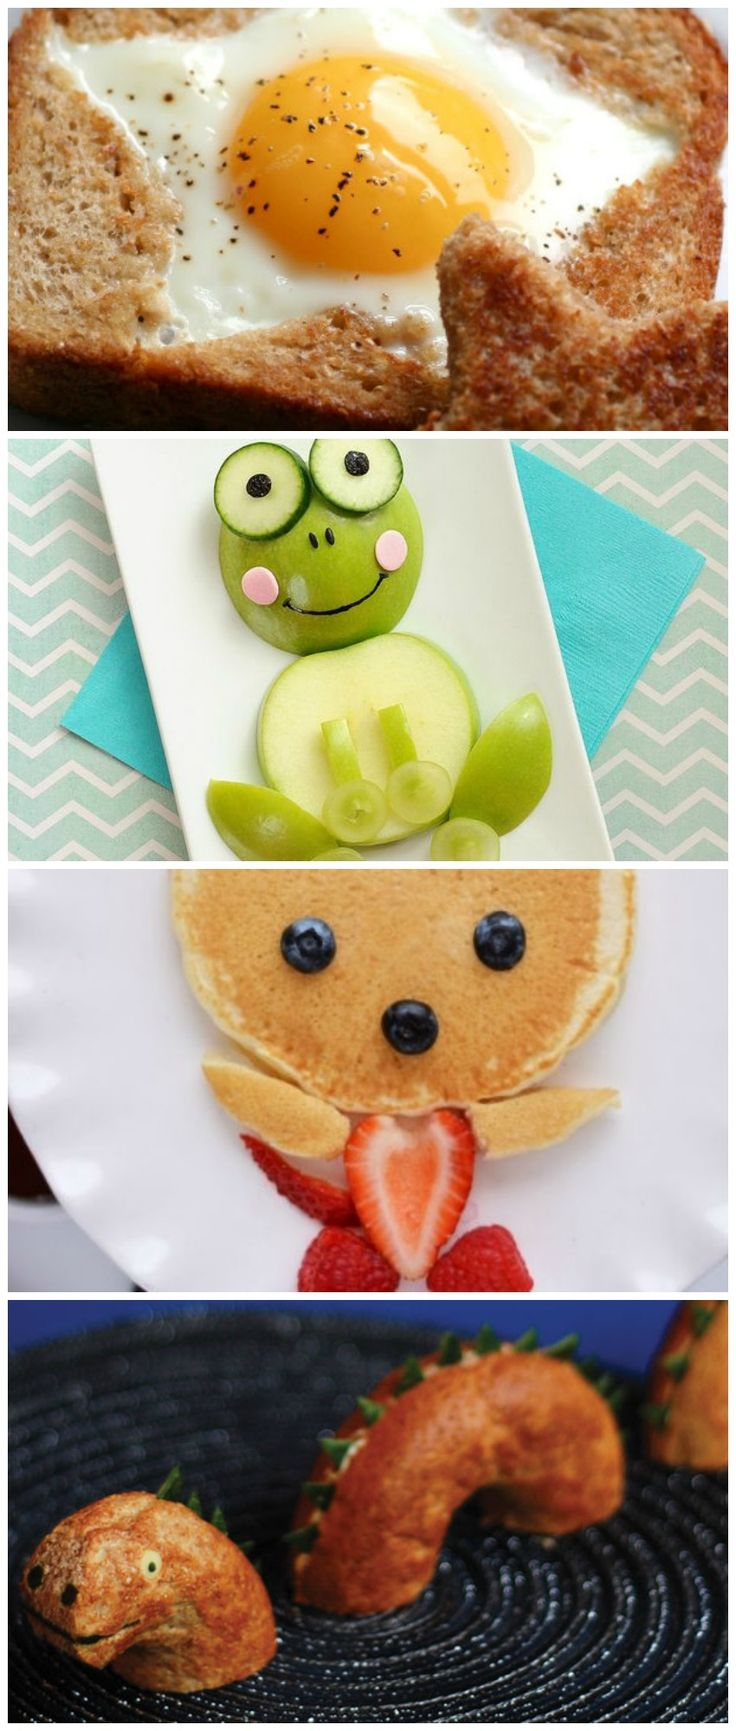 It's okay to play with food... as long as you're doing it to encourage kids to eat well. :)